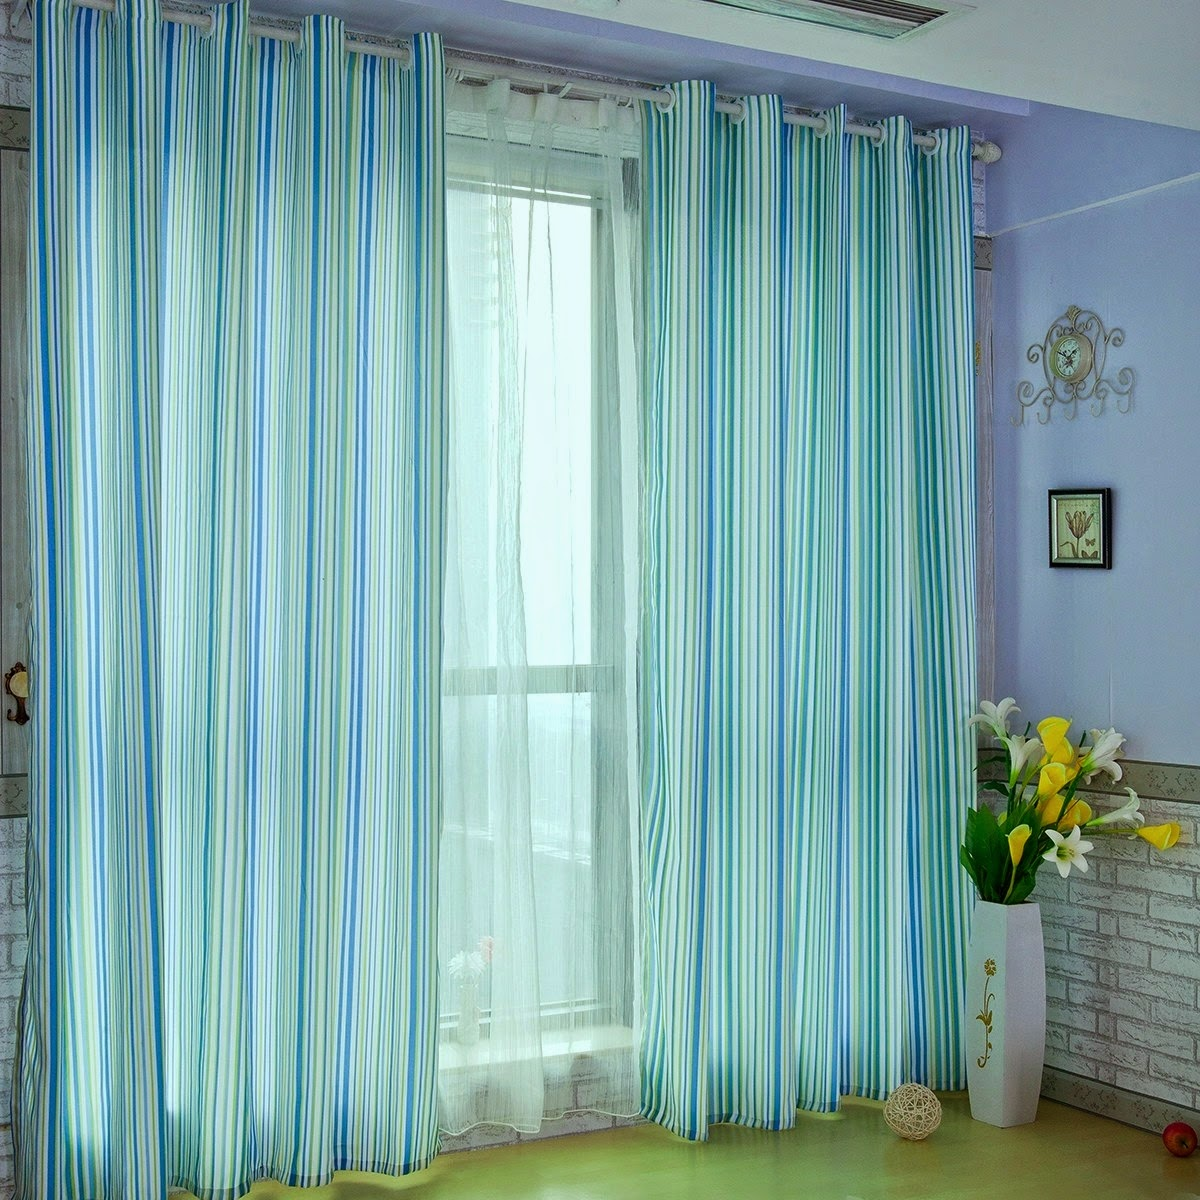 Elegant Curtain Meaning Boatylicious Org